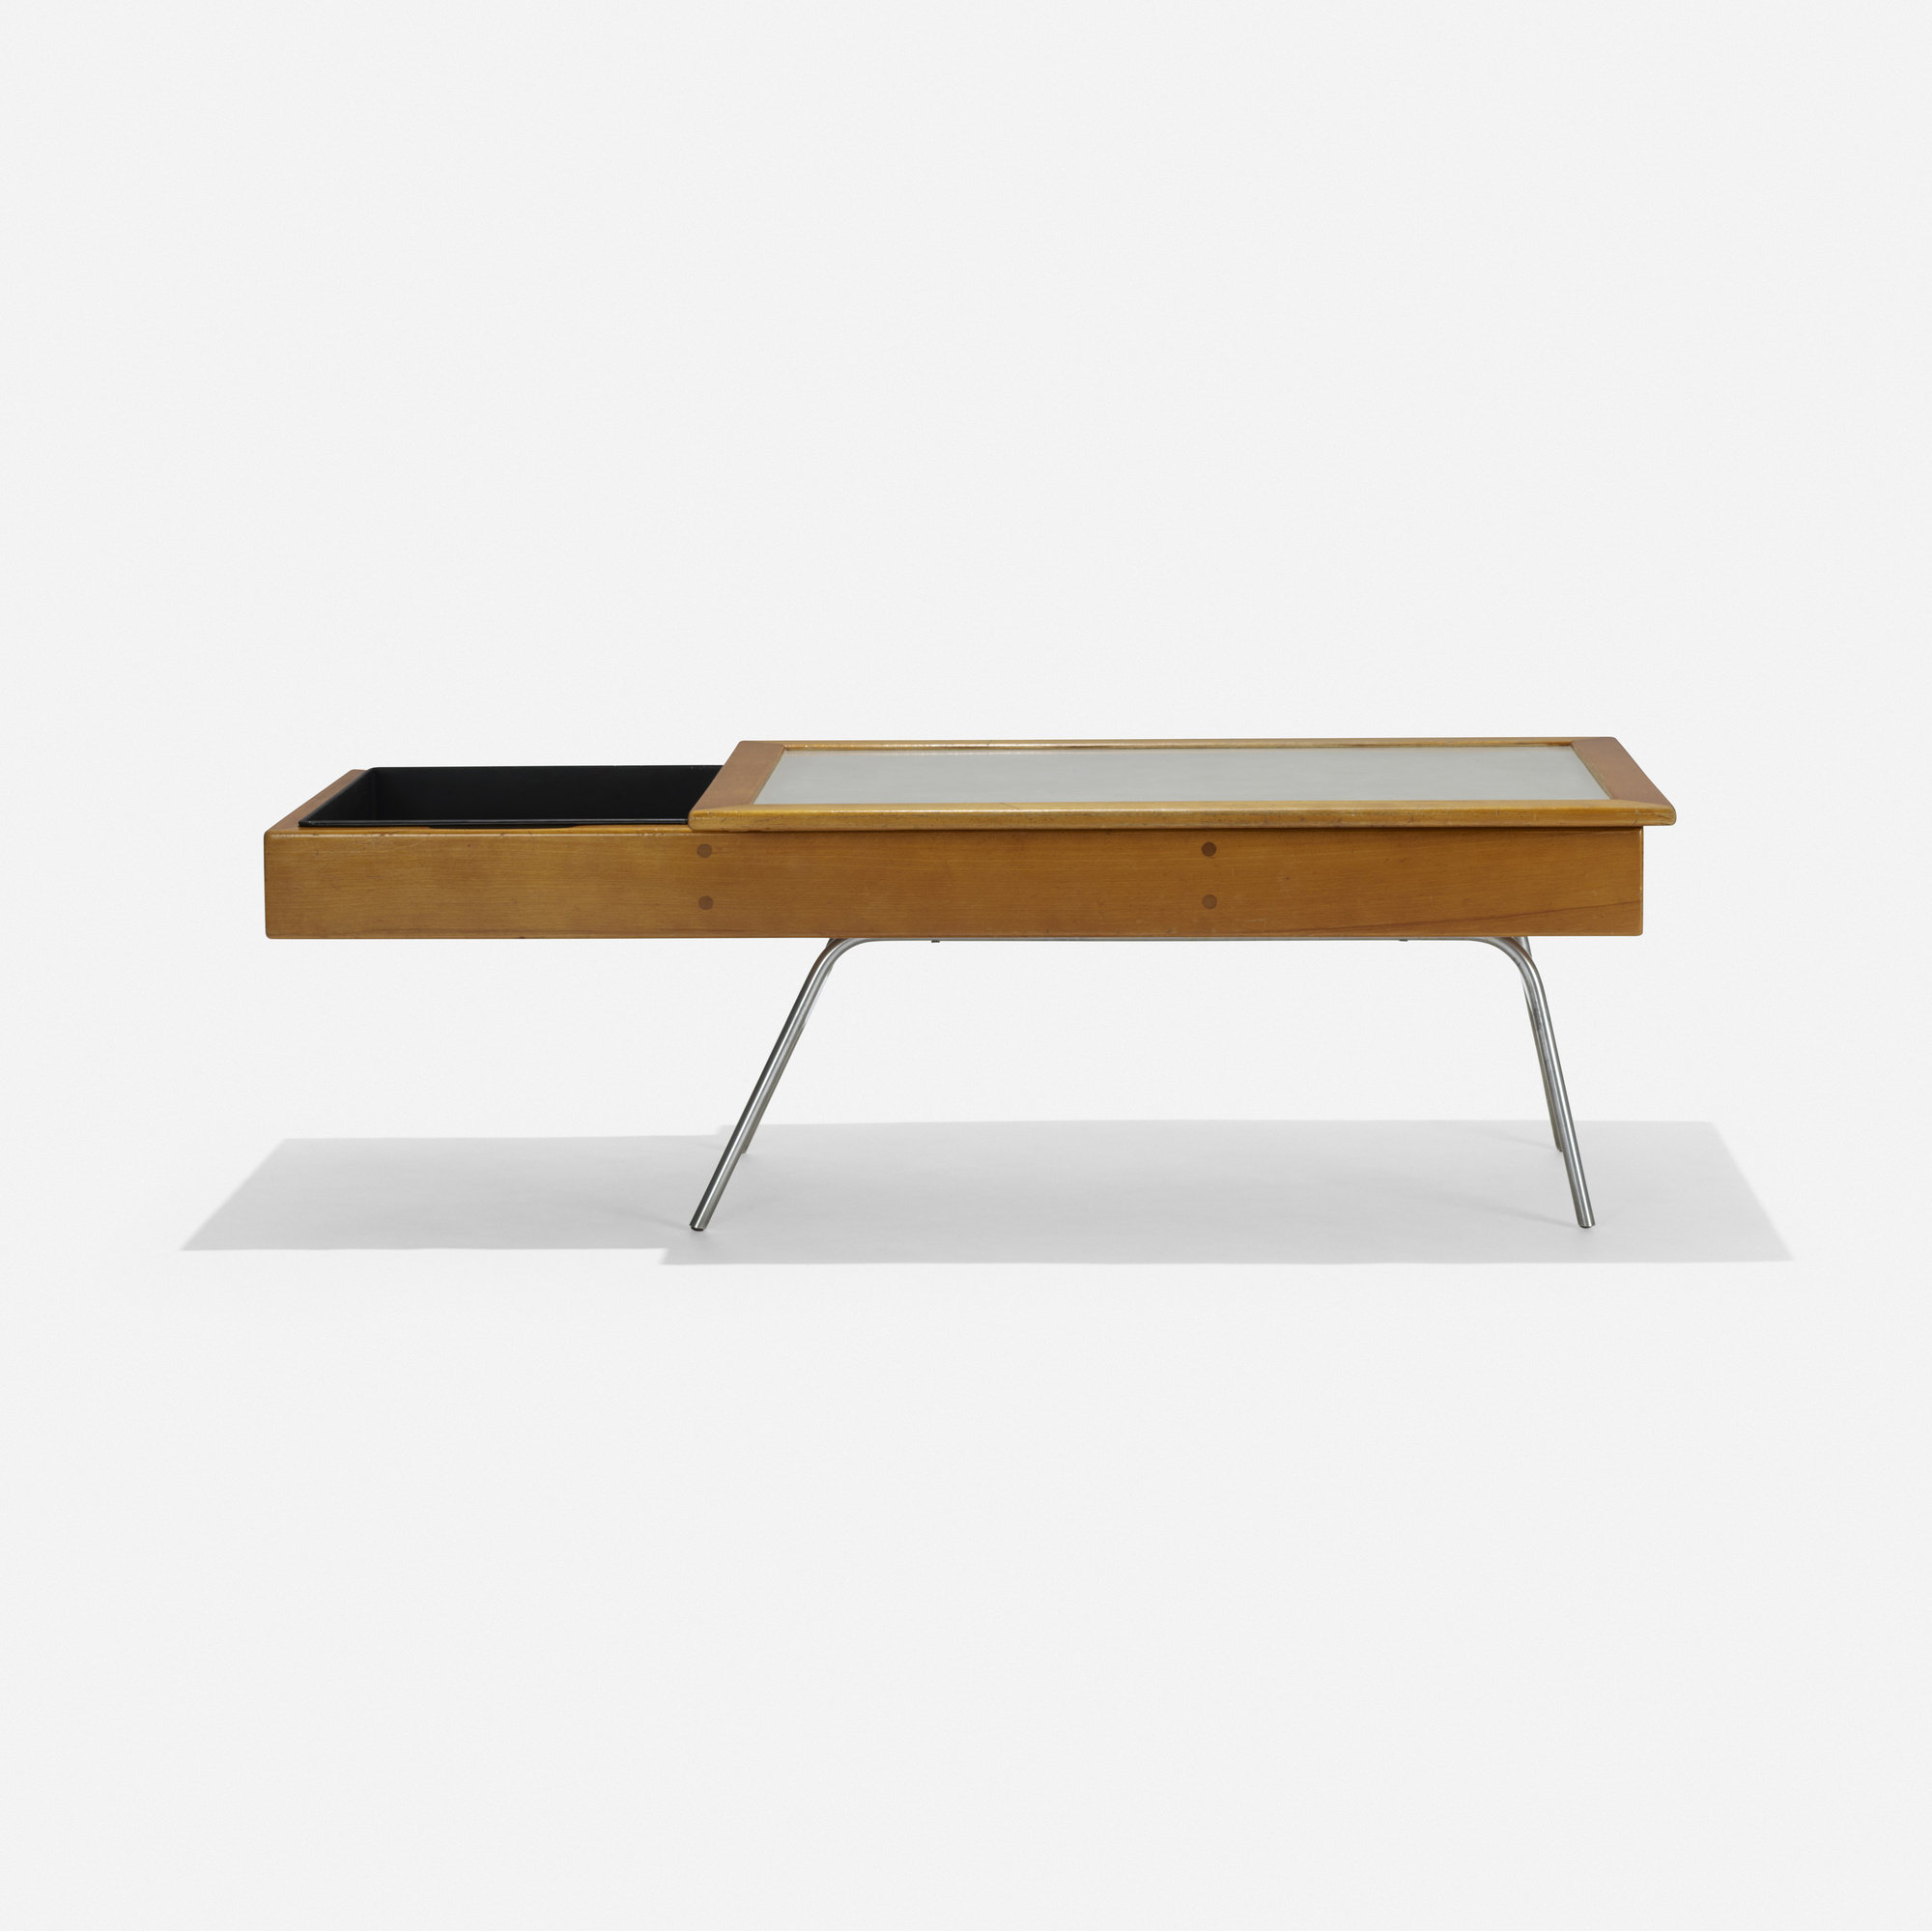 105: George Nelson & Associates / coffee table, model 4662 (1 of 3)